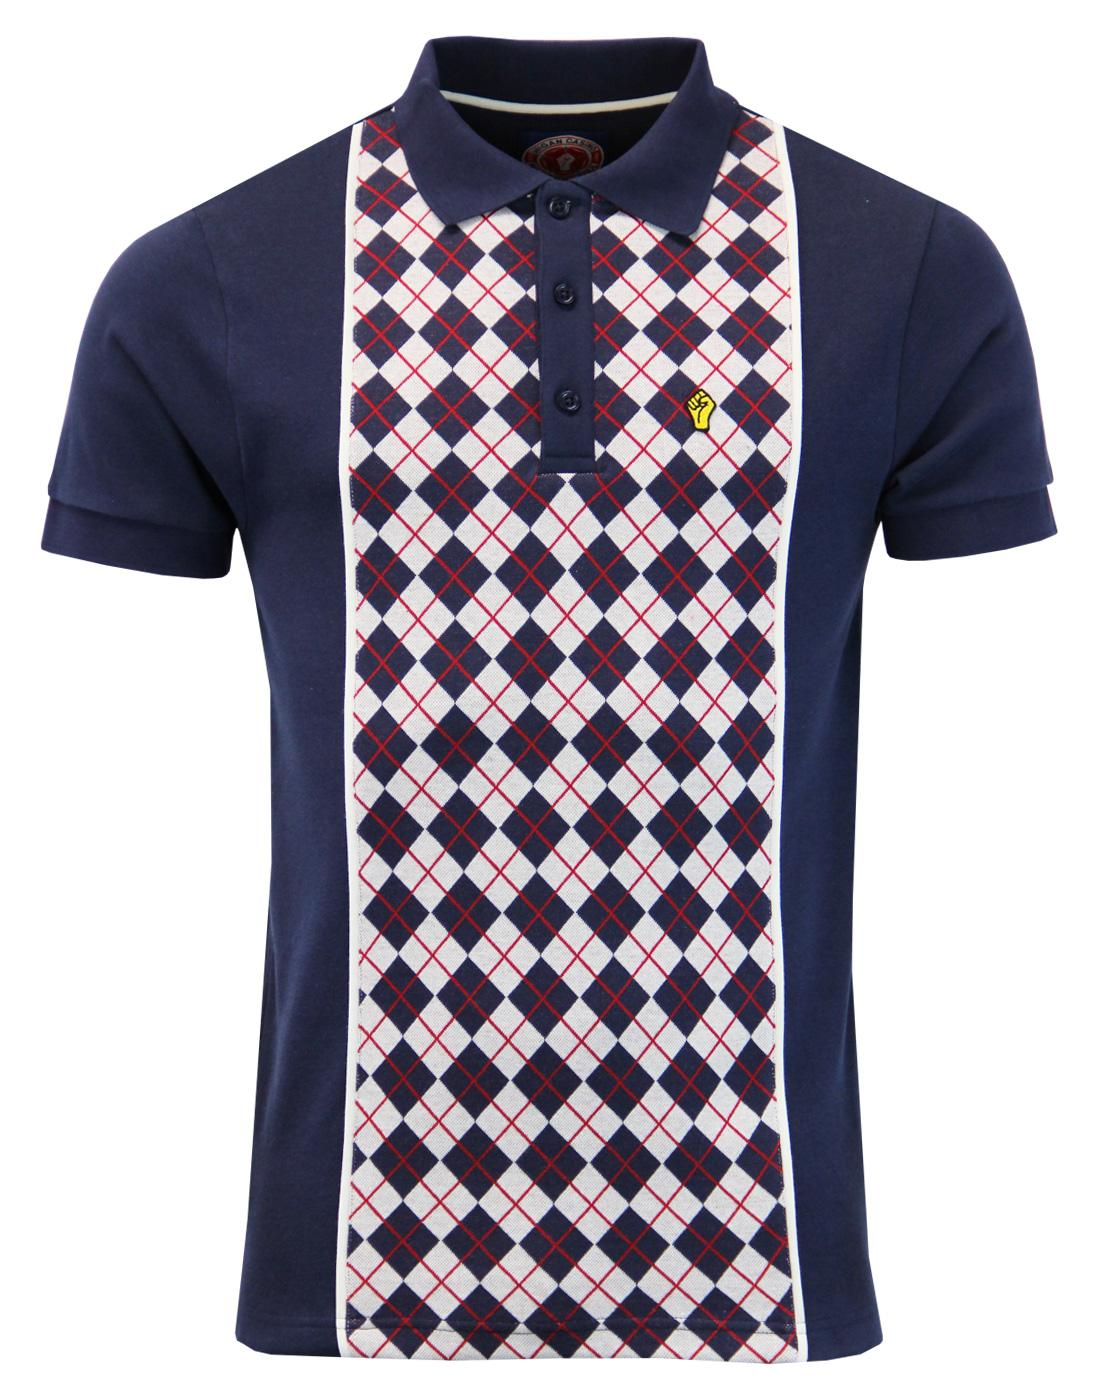 WIGAN CASINO Mod Argyle Panel Piped Polo Top (N)